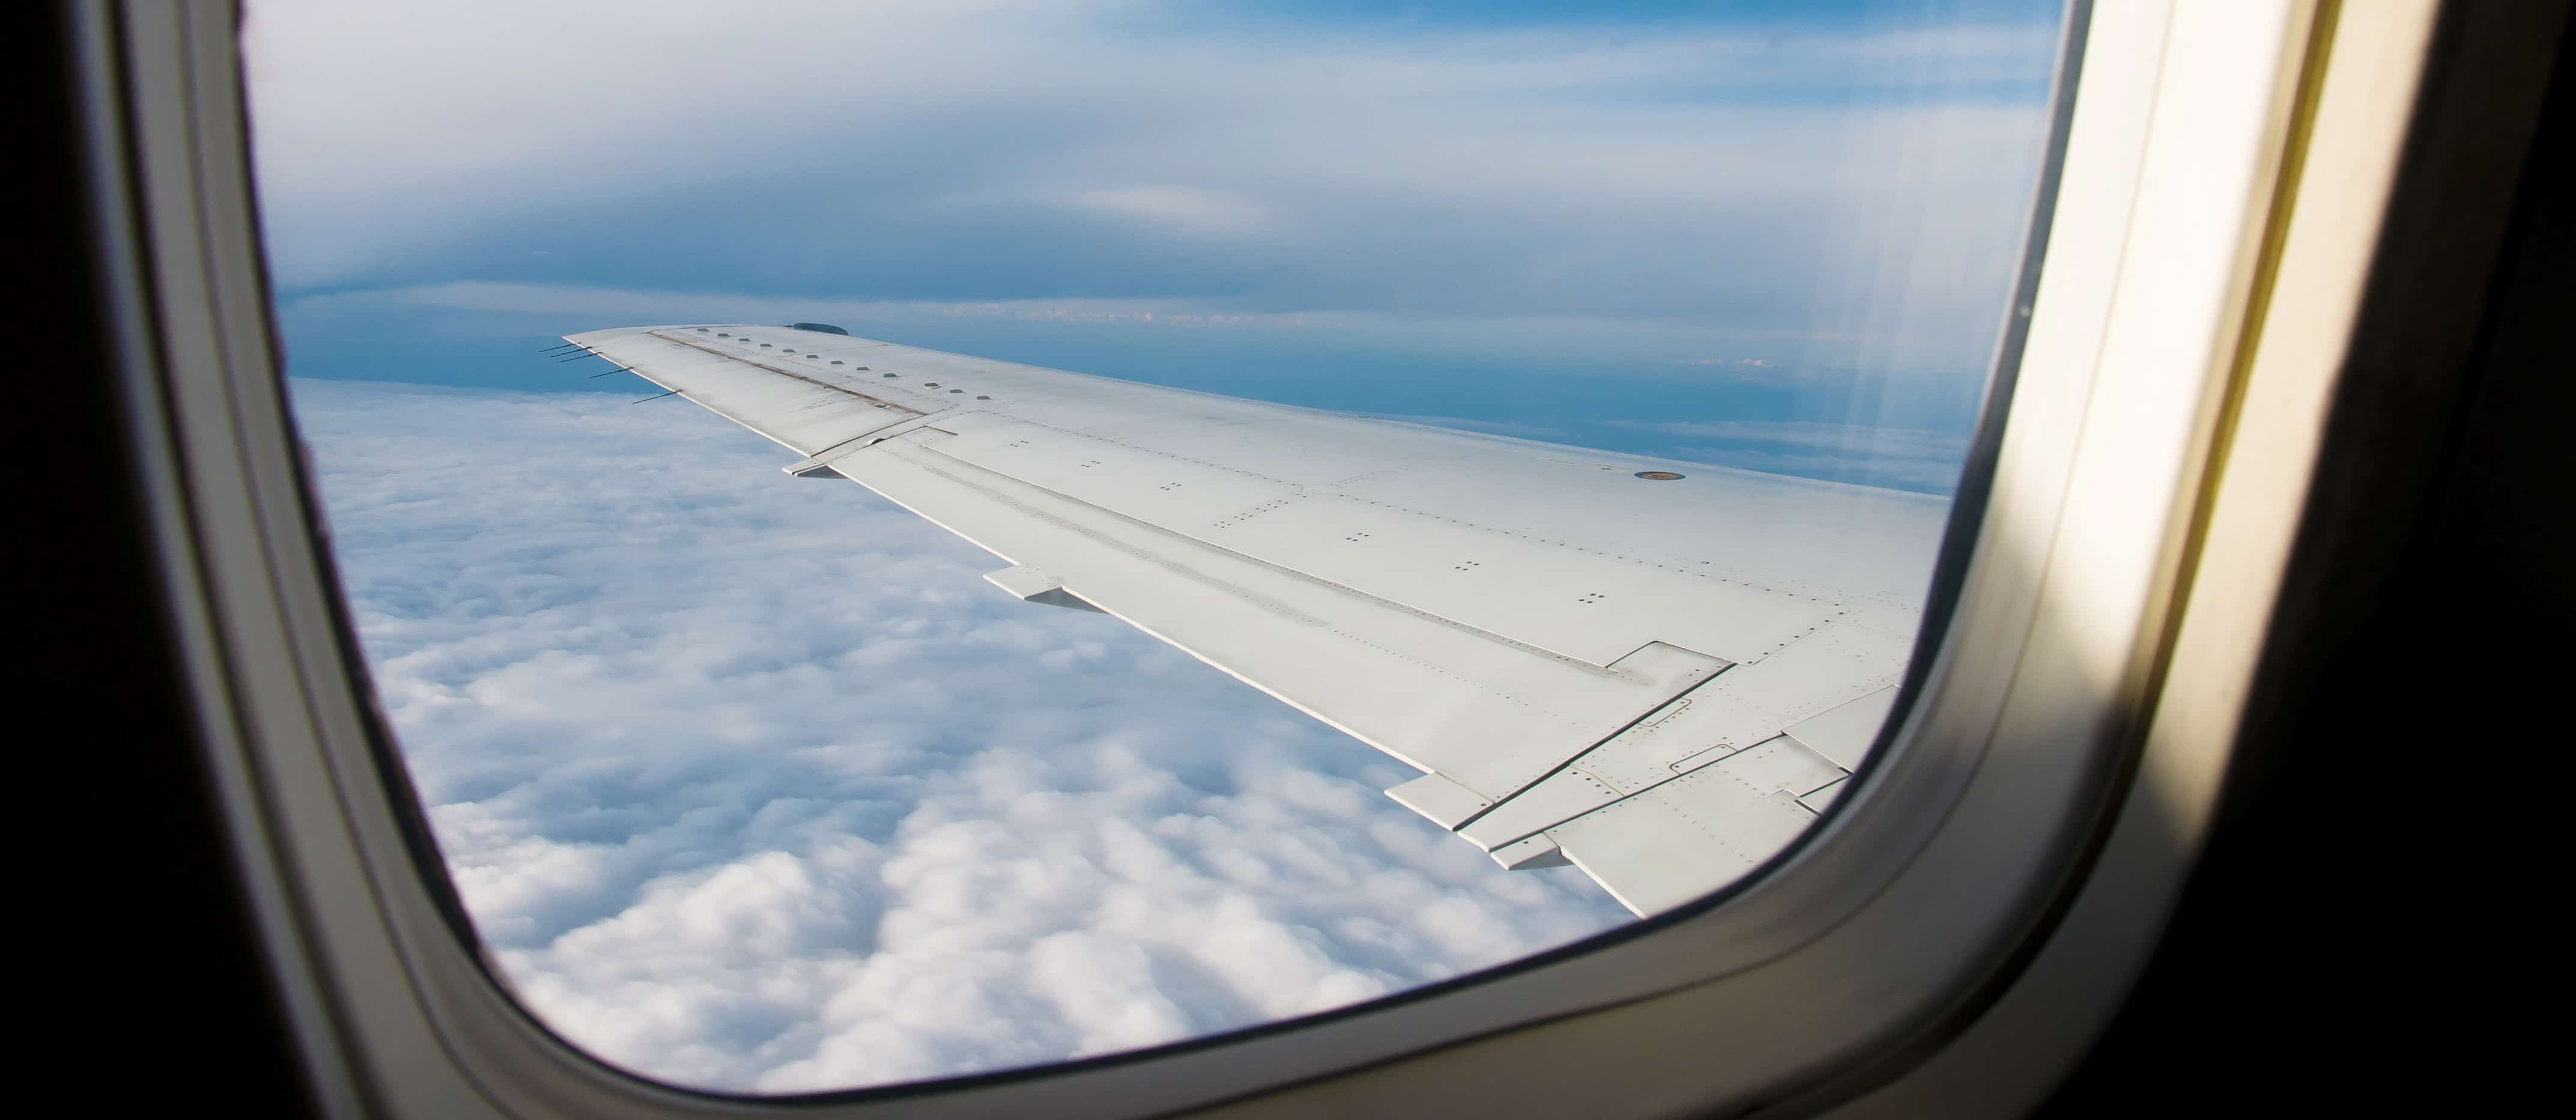 Dealing With Air Travel Radiation Exposure